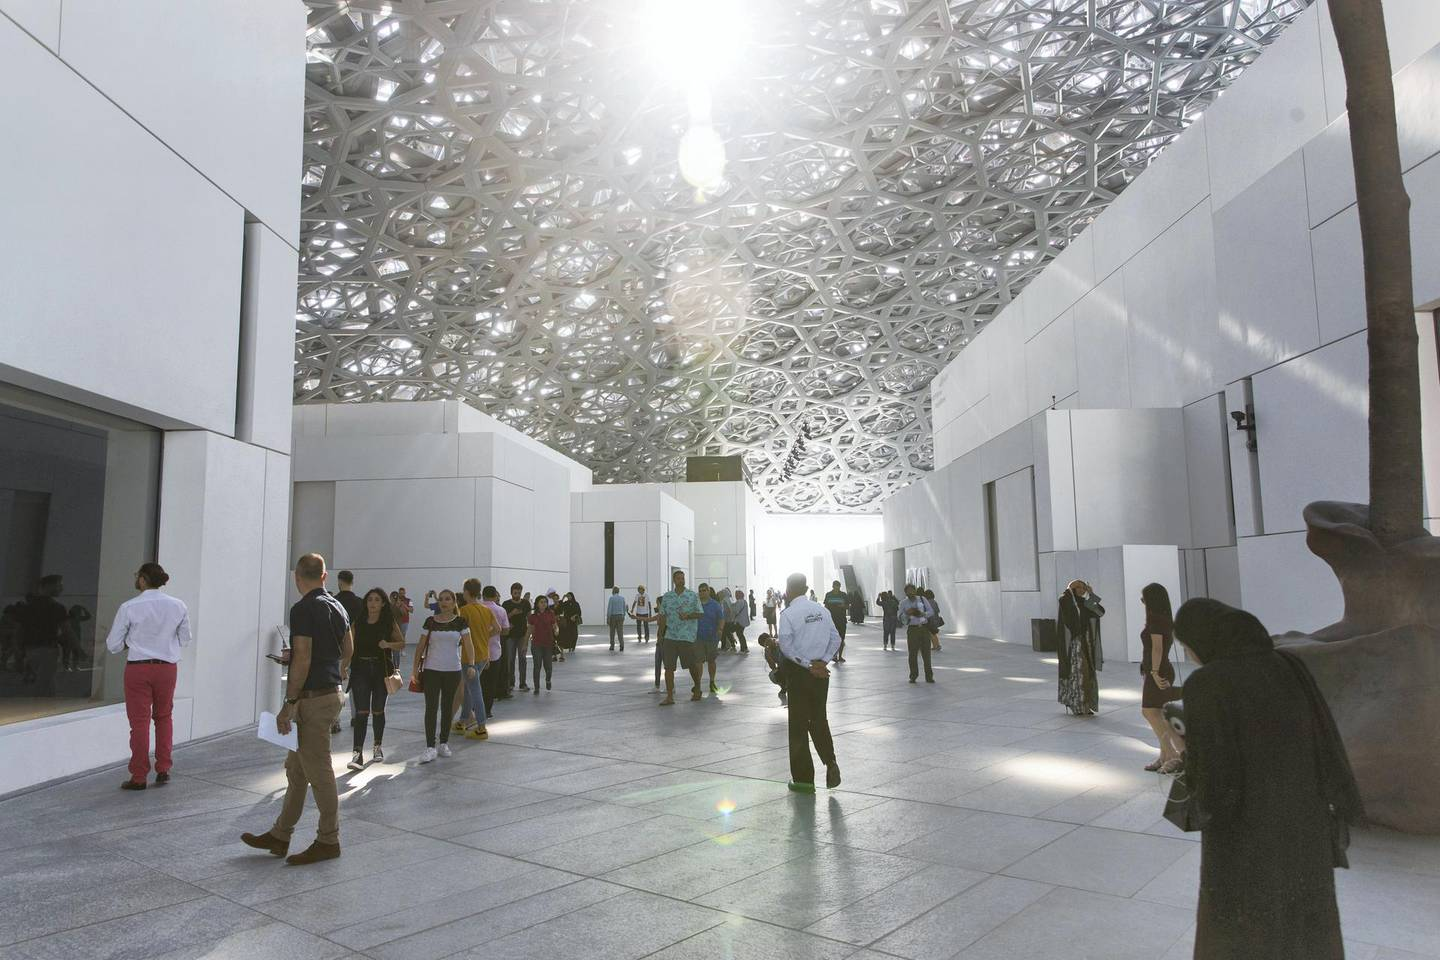 Abu Dhabi, United Arab Emirates, November 11, 2017:    Visitors attend the opening day at the Louvre Abbu Dhabi on Saadiyat Island in Abu Dhabi on November 11, 2017. Christopher Pike / The National  Reporter: James Langton, John Dennehy Section: News